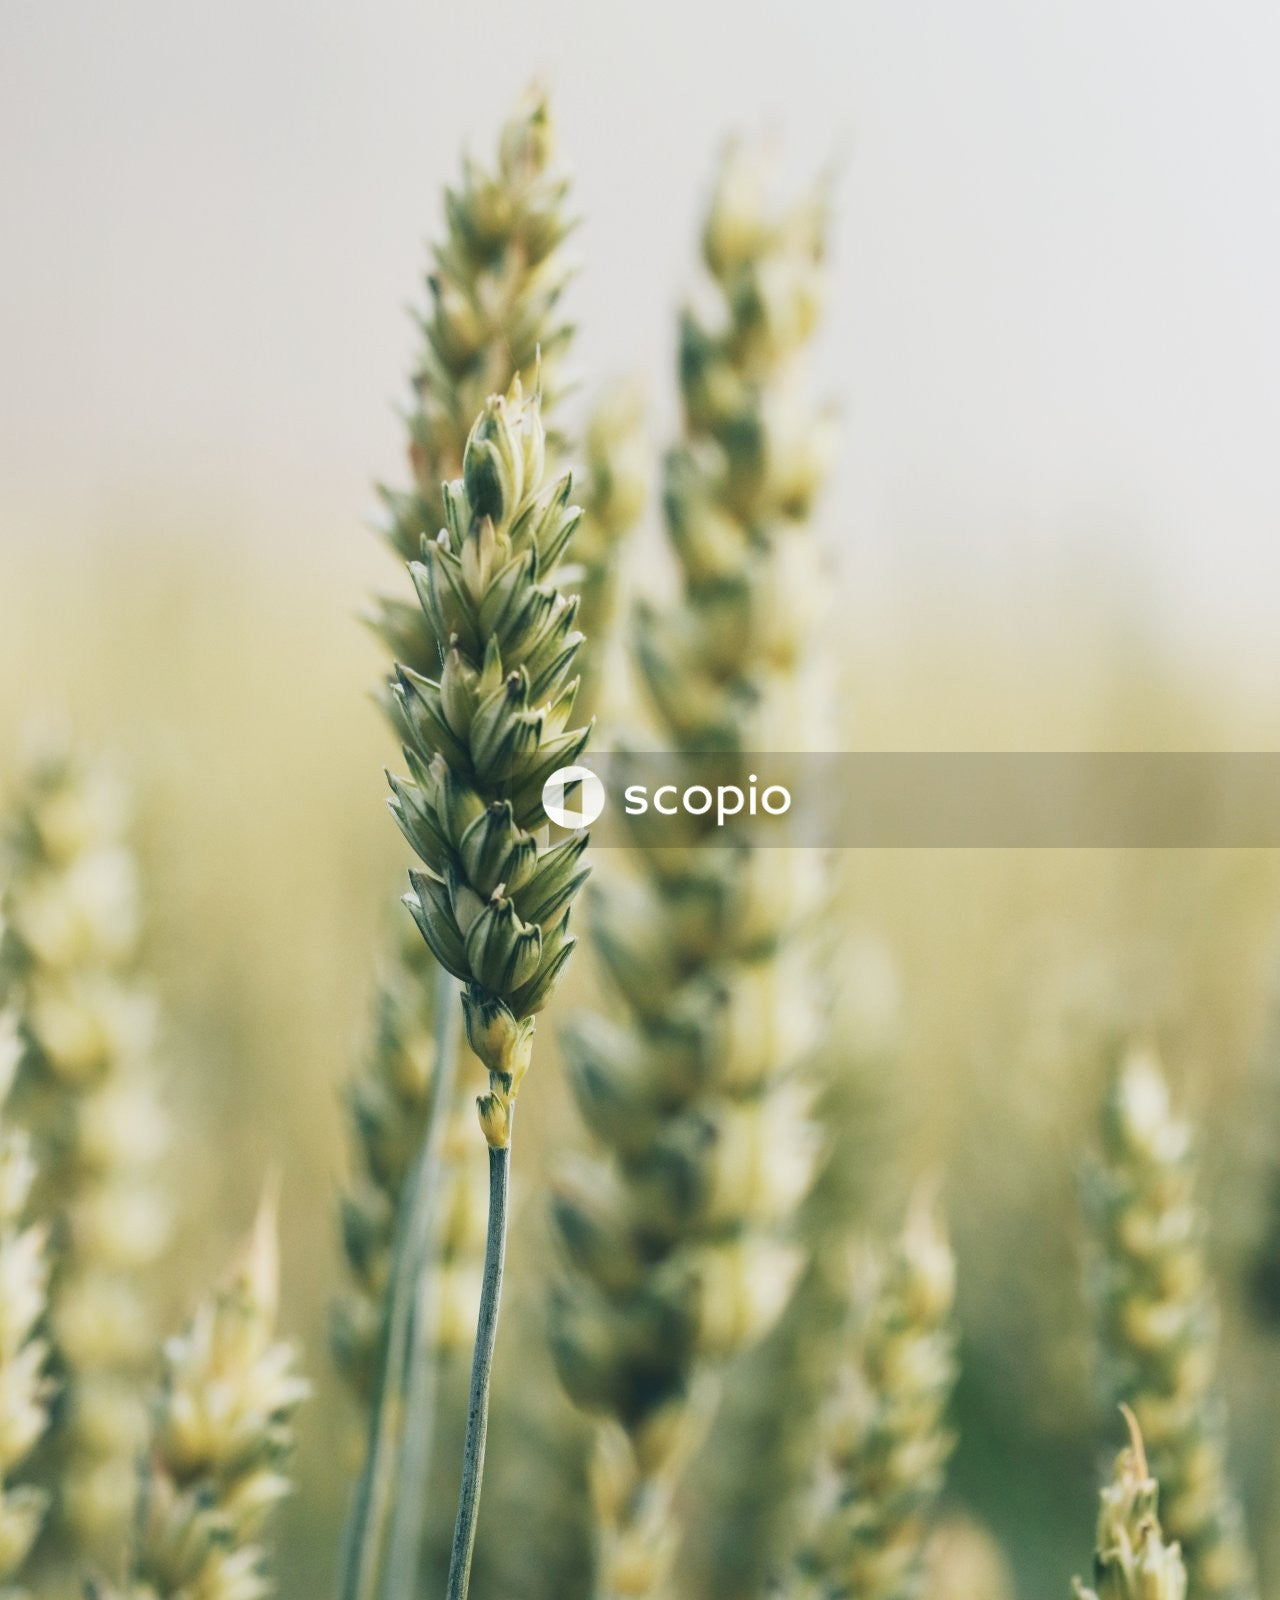 Green wheat in close up